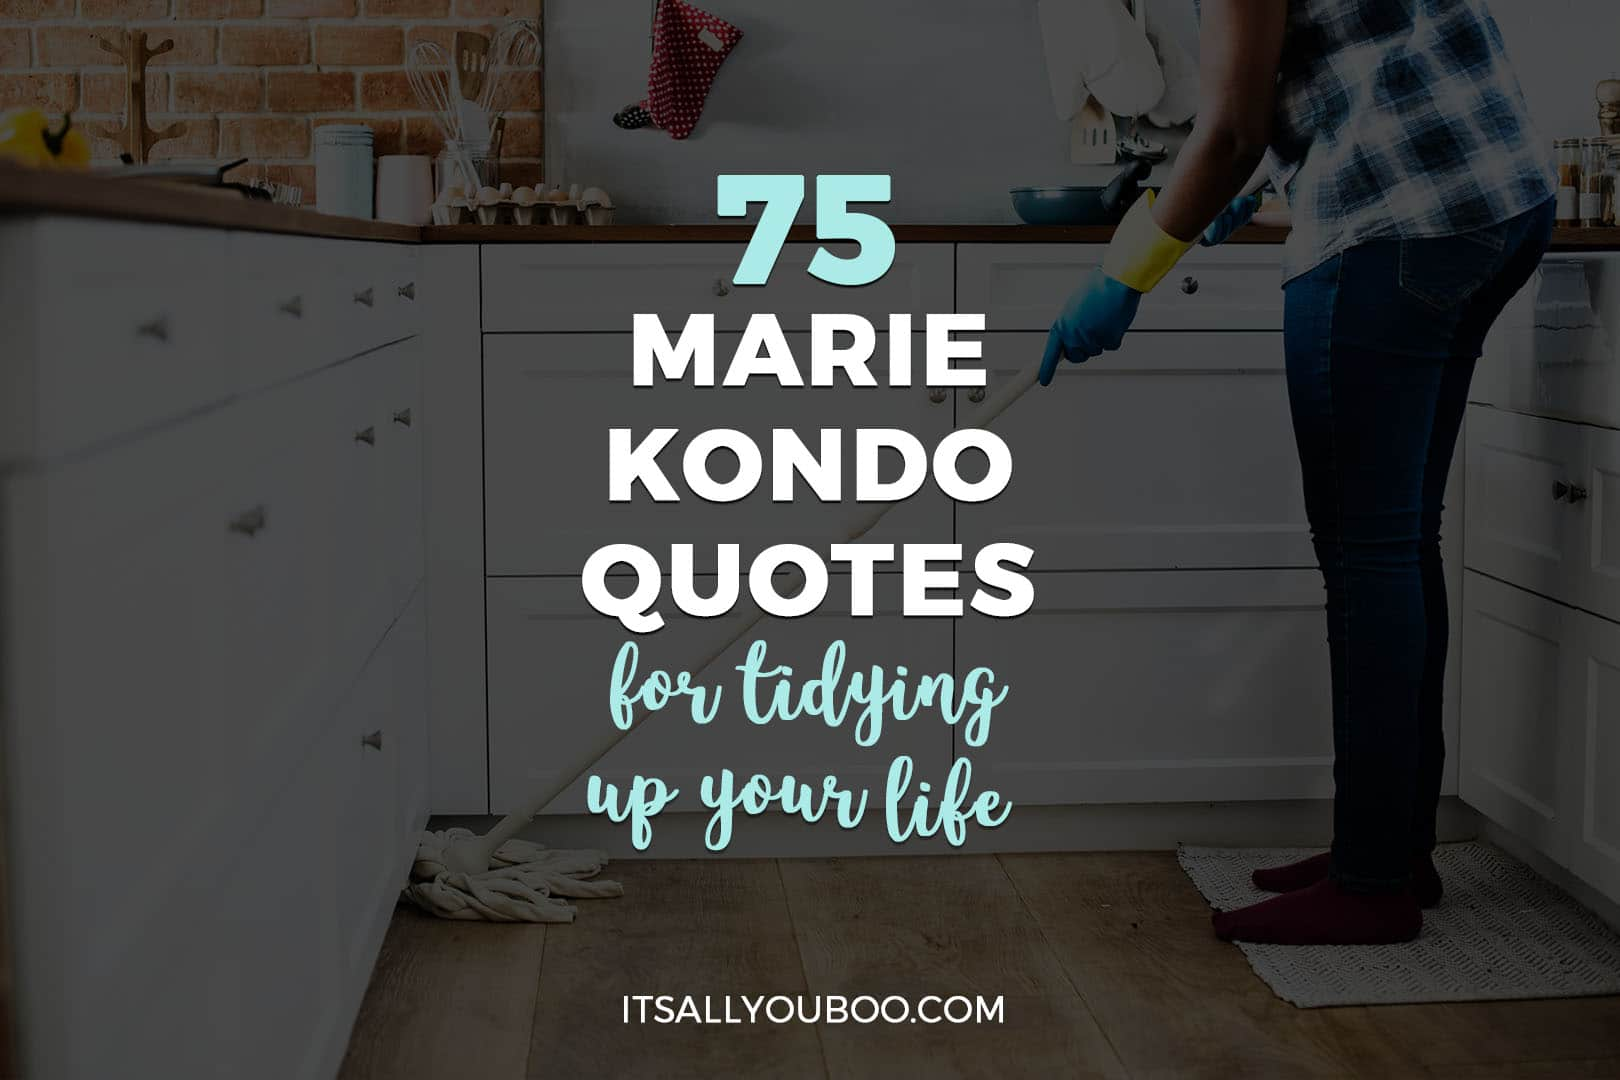 75 Marie Kondo Quotes For Tidying Up Your Life Its All You Boo